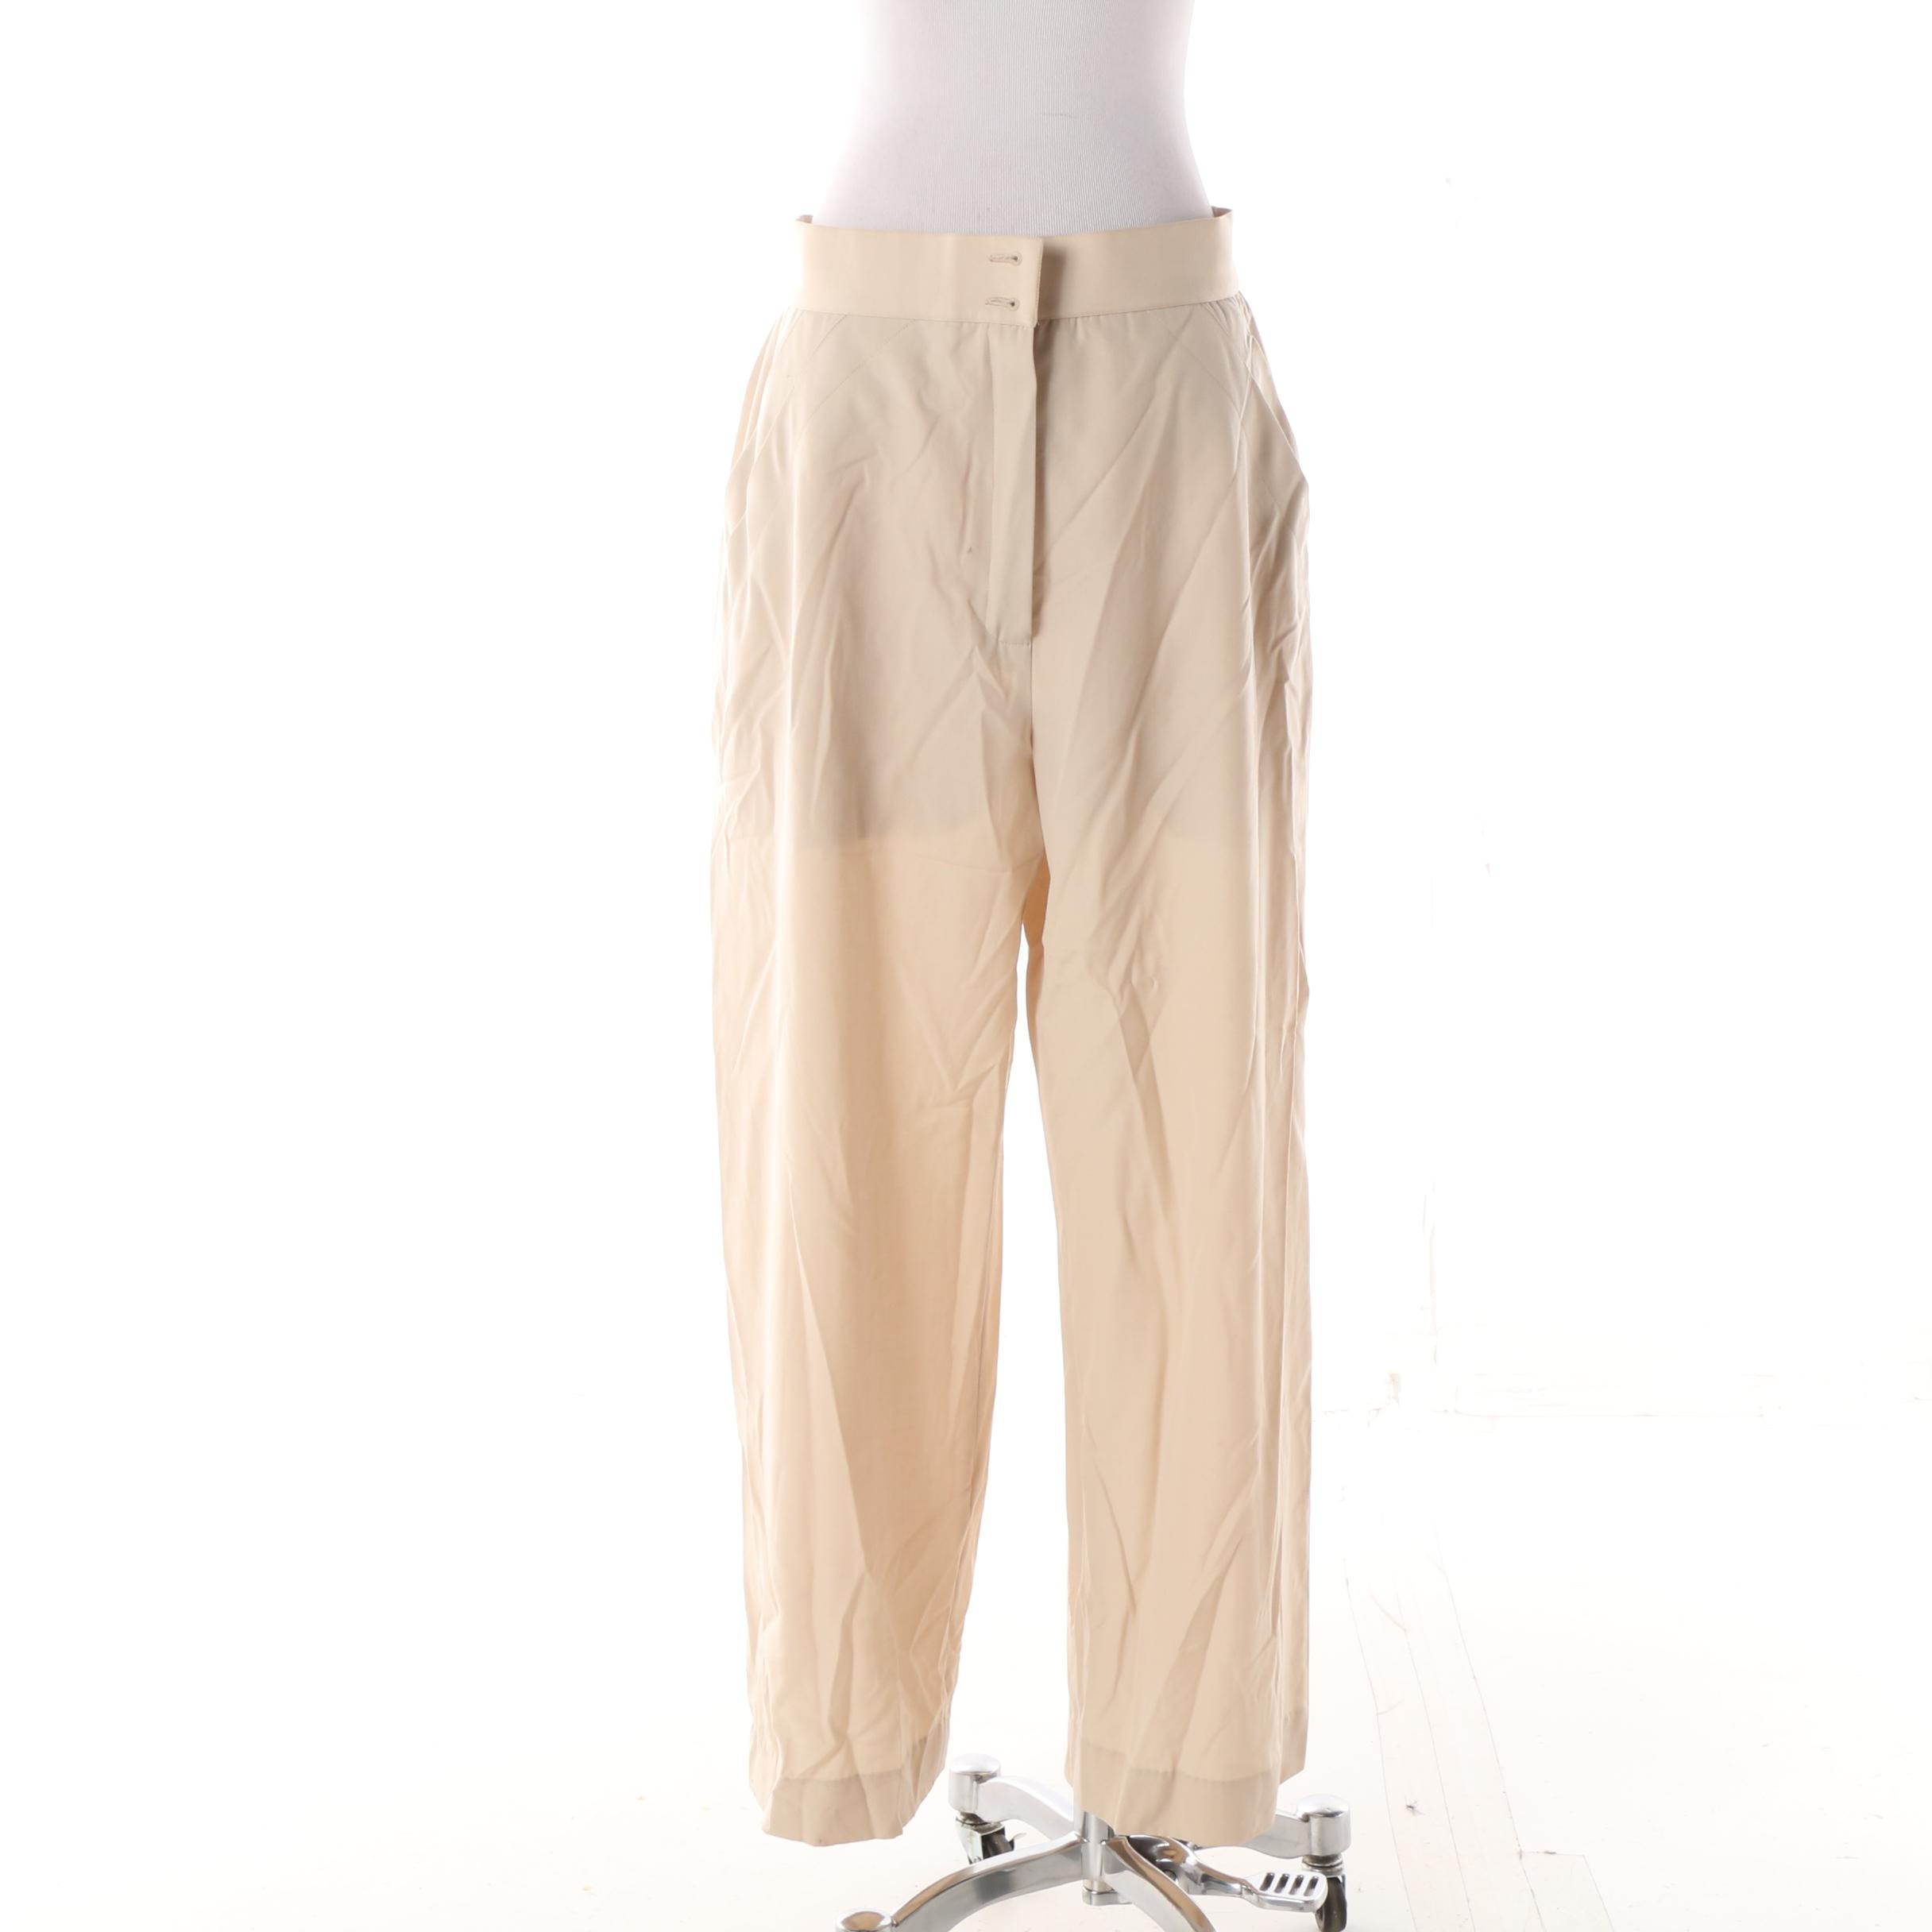 Women's 1980s Vintage Chanel Beige Wide Leg Trousers